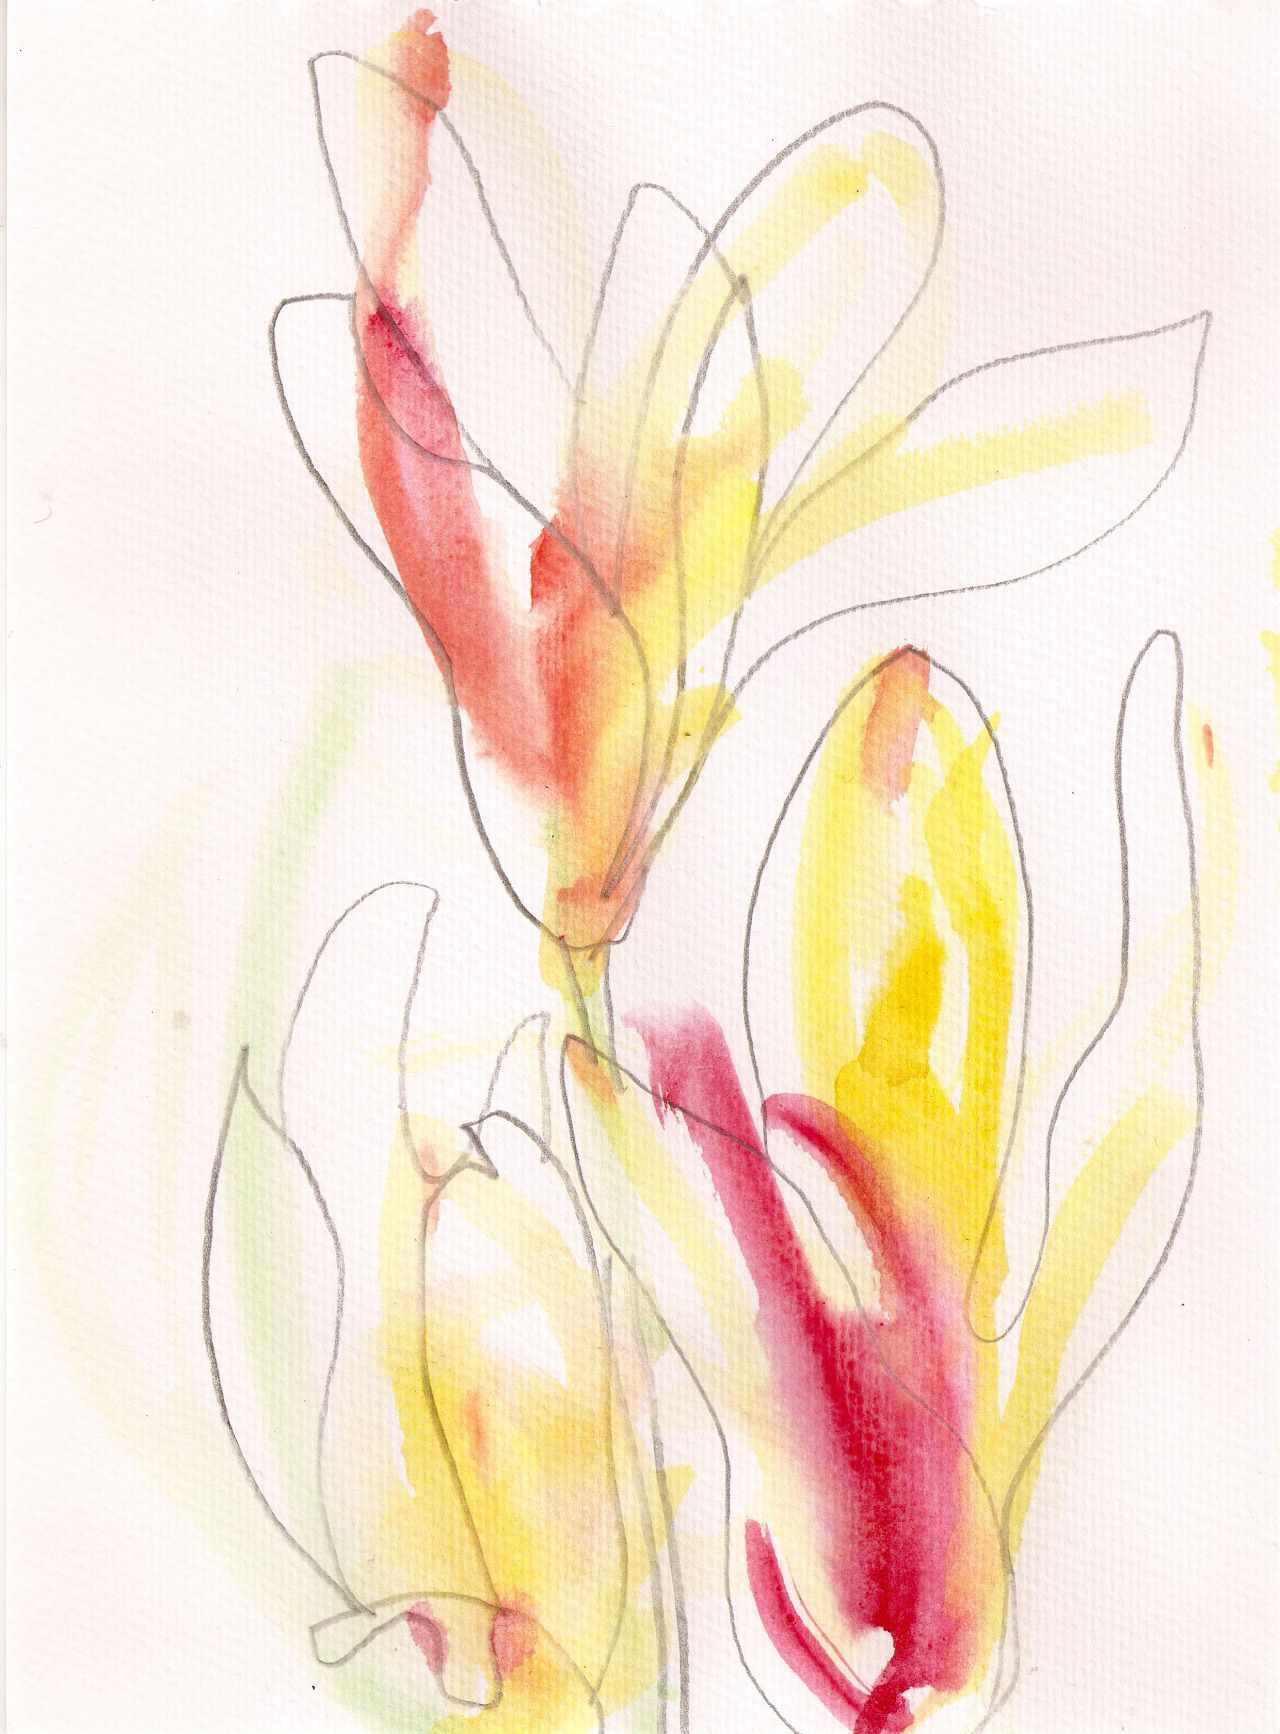 """Spring flowers - tulips. """"You can cut all the flowers but you cannot keep Spring from coming."""" Pablo Neruda March 2016"""